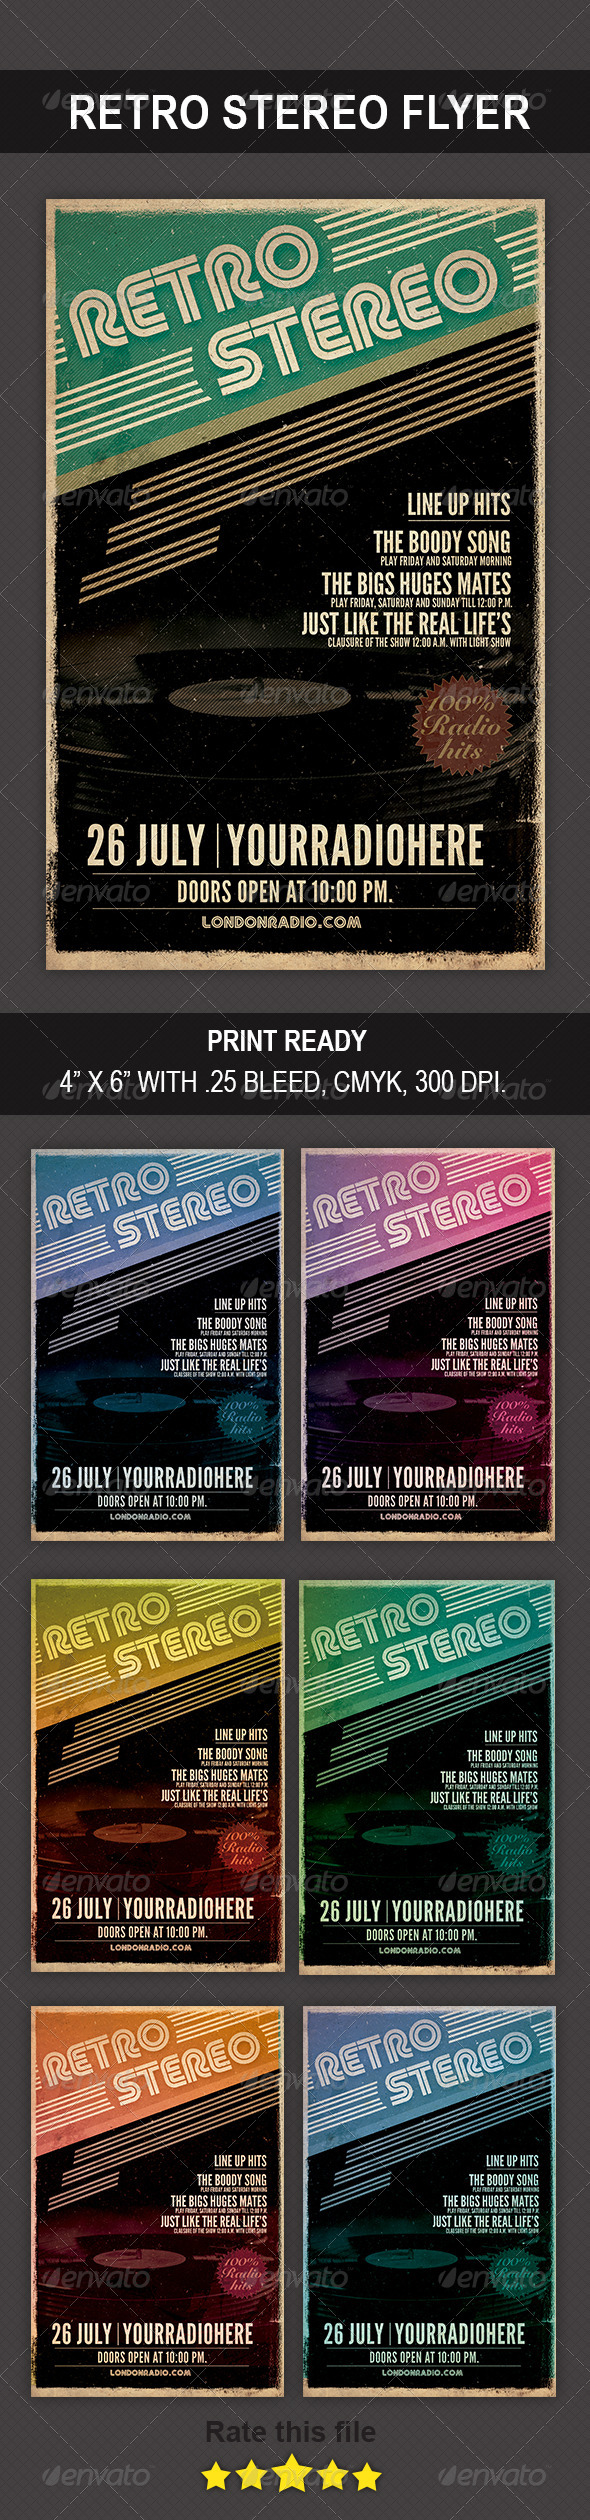 GraphicRiver Retro Stereo Flyer 8771722